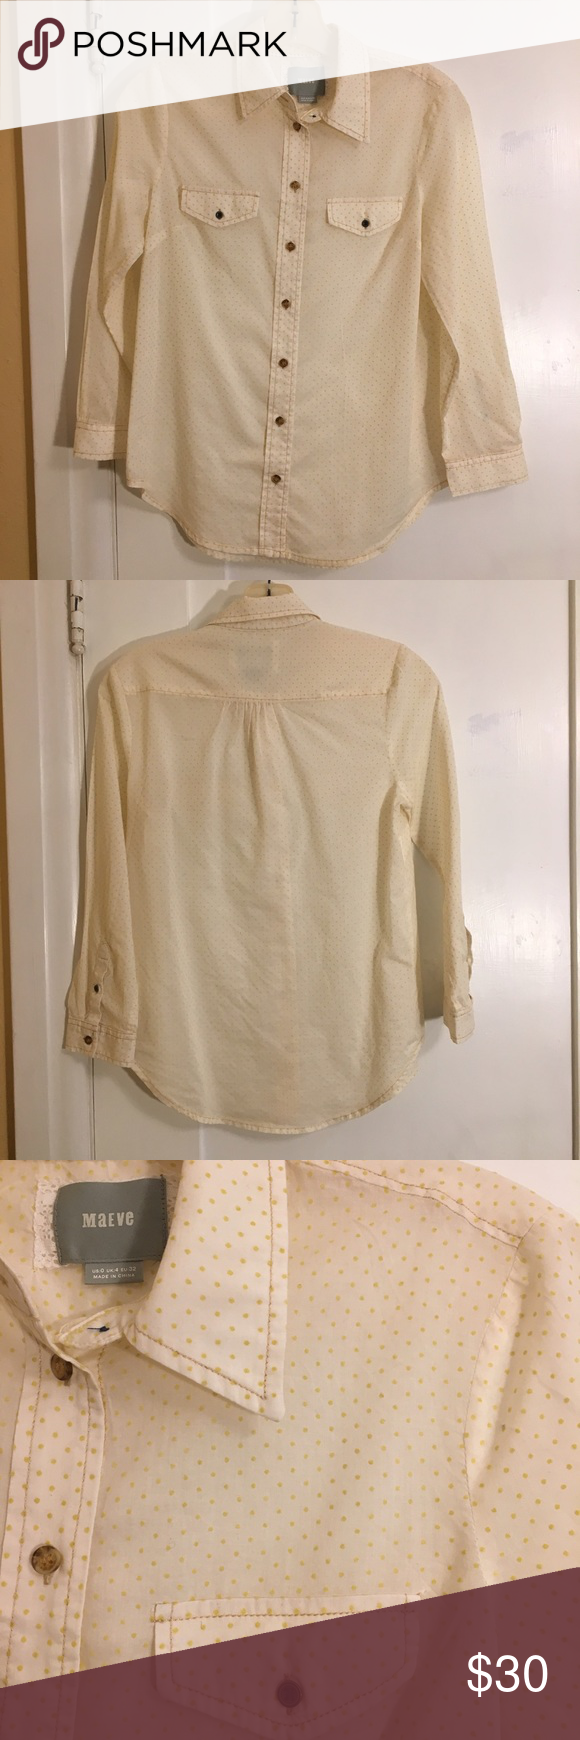 Anthropologie Maeve Yellow Polka Dot Top Yellow polka dot button down top with two front pockets. Size 0. In great condition. Anthropologie Tops